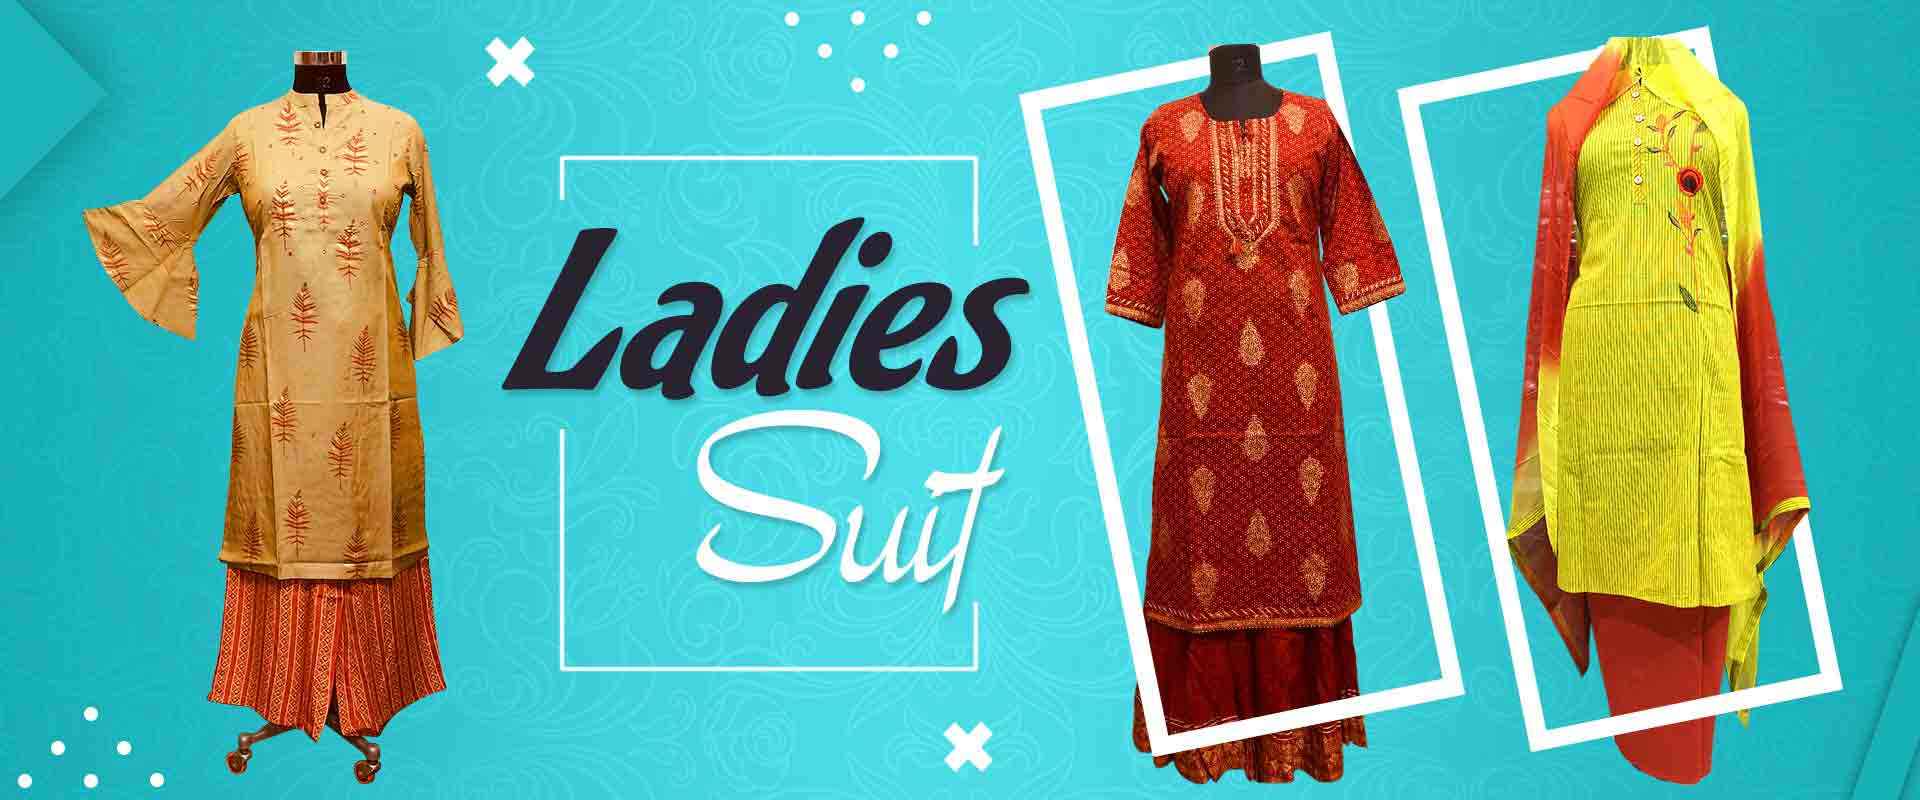 Ladies Suit